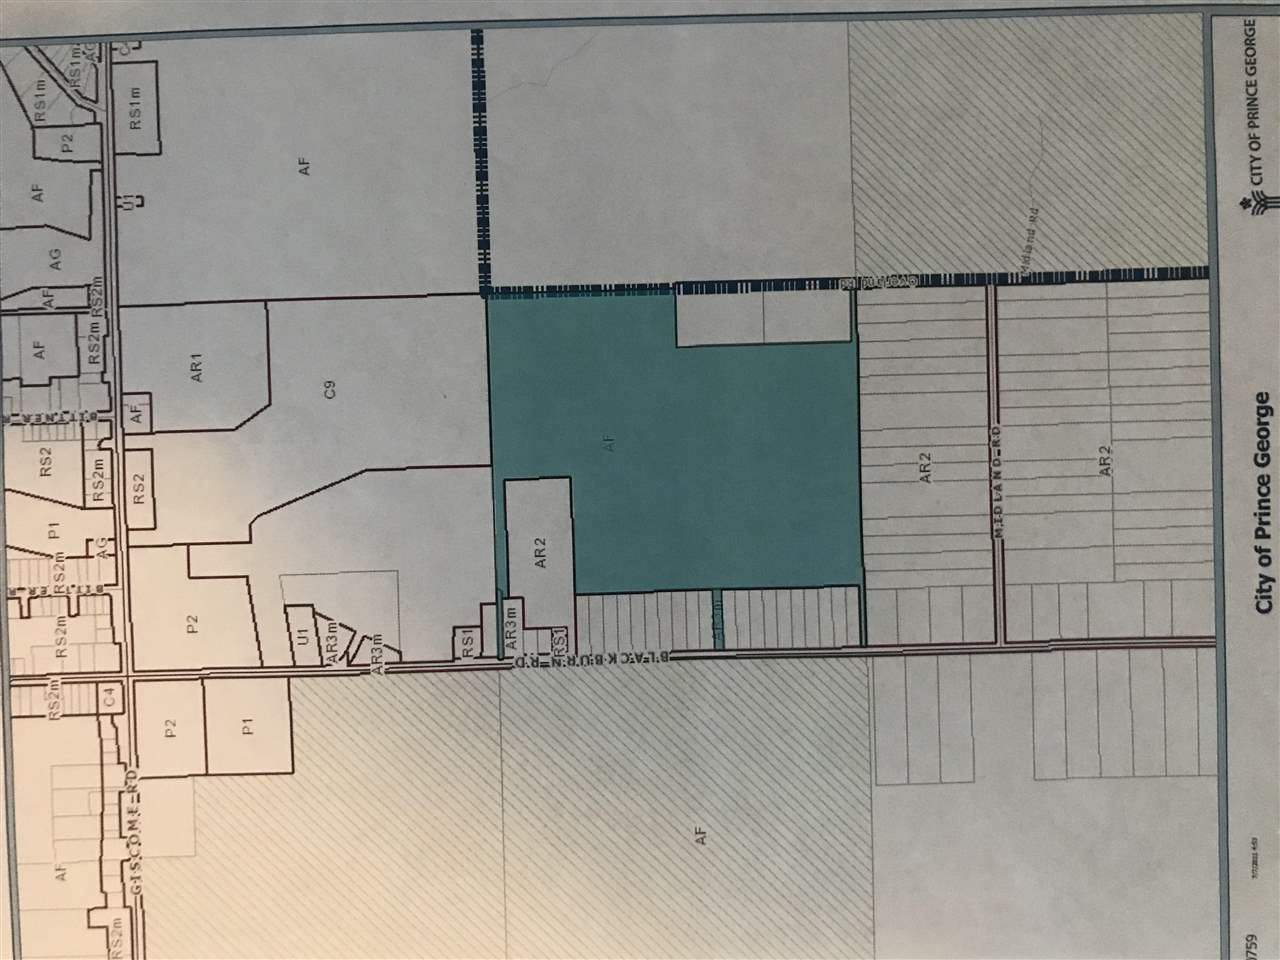 Main Photo: OVERLAND ROAD in Prince George: South Blackburn Land for sale (PG City South East (Zone 75))  : MLS®# R2435725